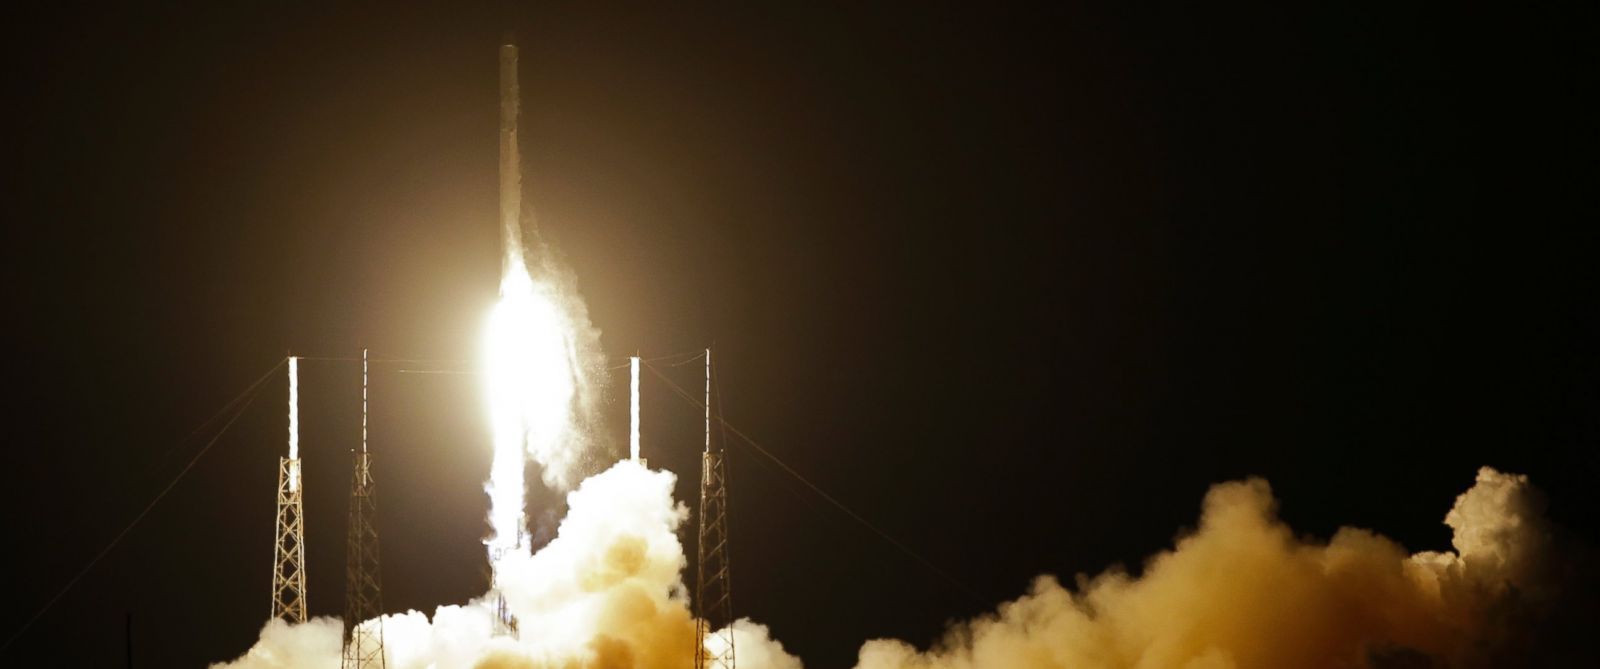 PHOTO: The Falcon 9 SpaceX rocket lifts off from Space Launch Complex 40 at the Cape Canaveral Air Force Station in Cape Canaveral, Fla., Jan. 10, 2015.